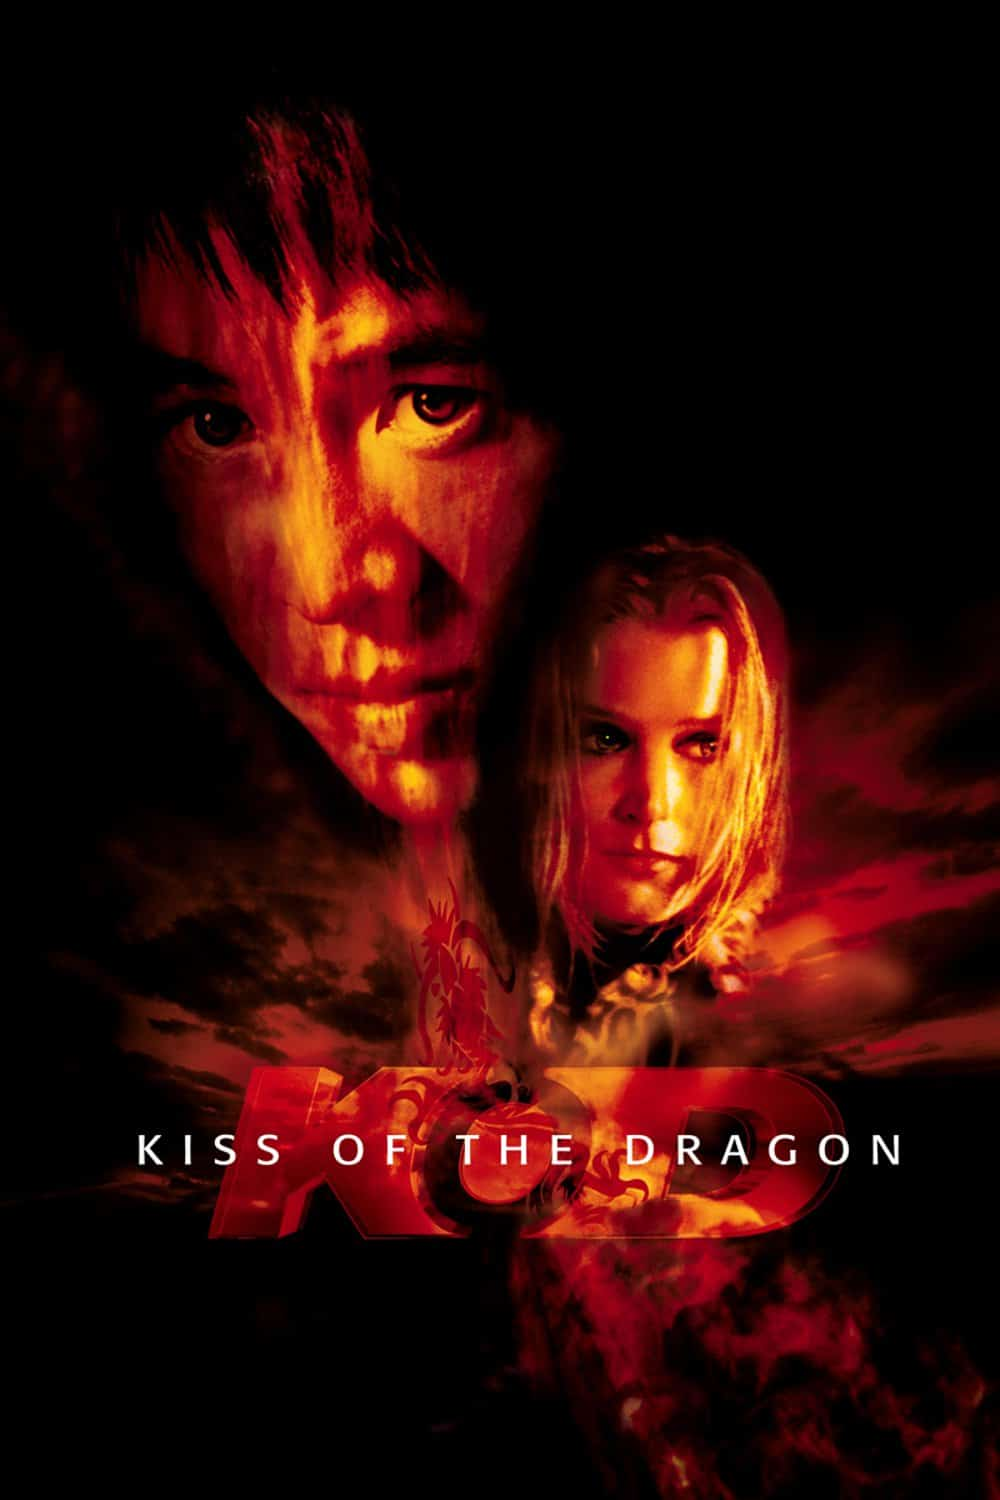 Kiss of the Dragon, 2001